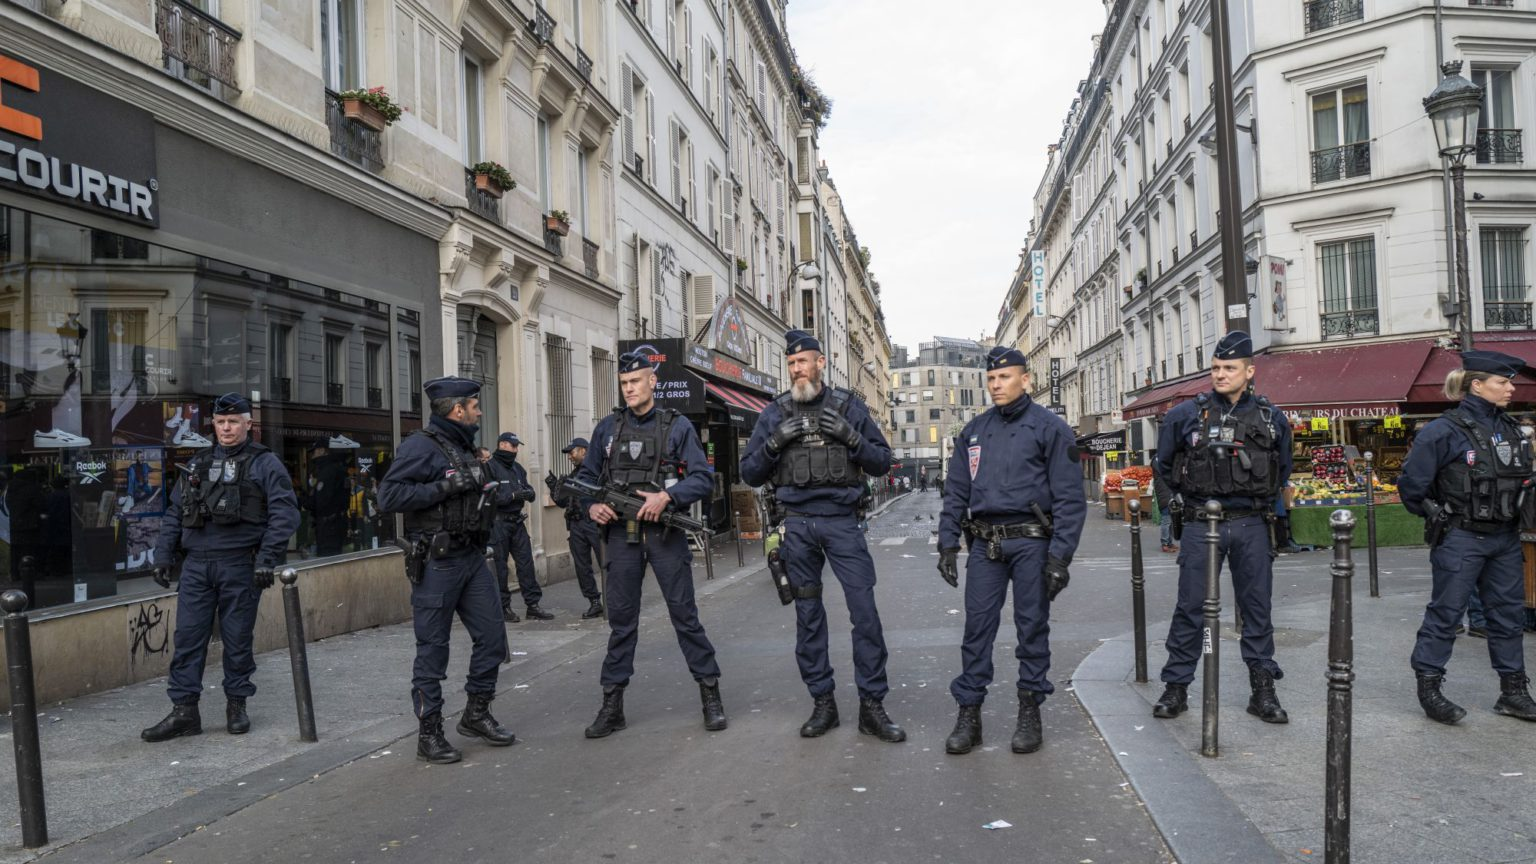 Why are so many journalists clamouring for a police state?